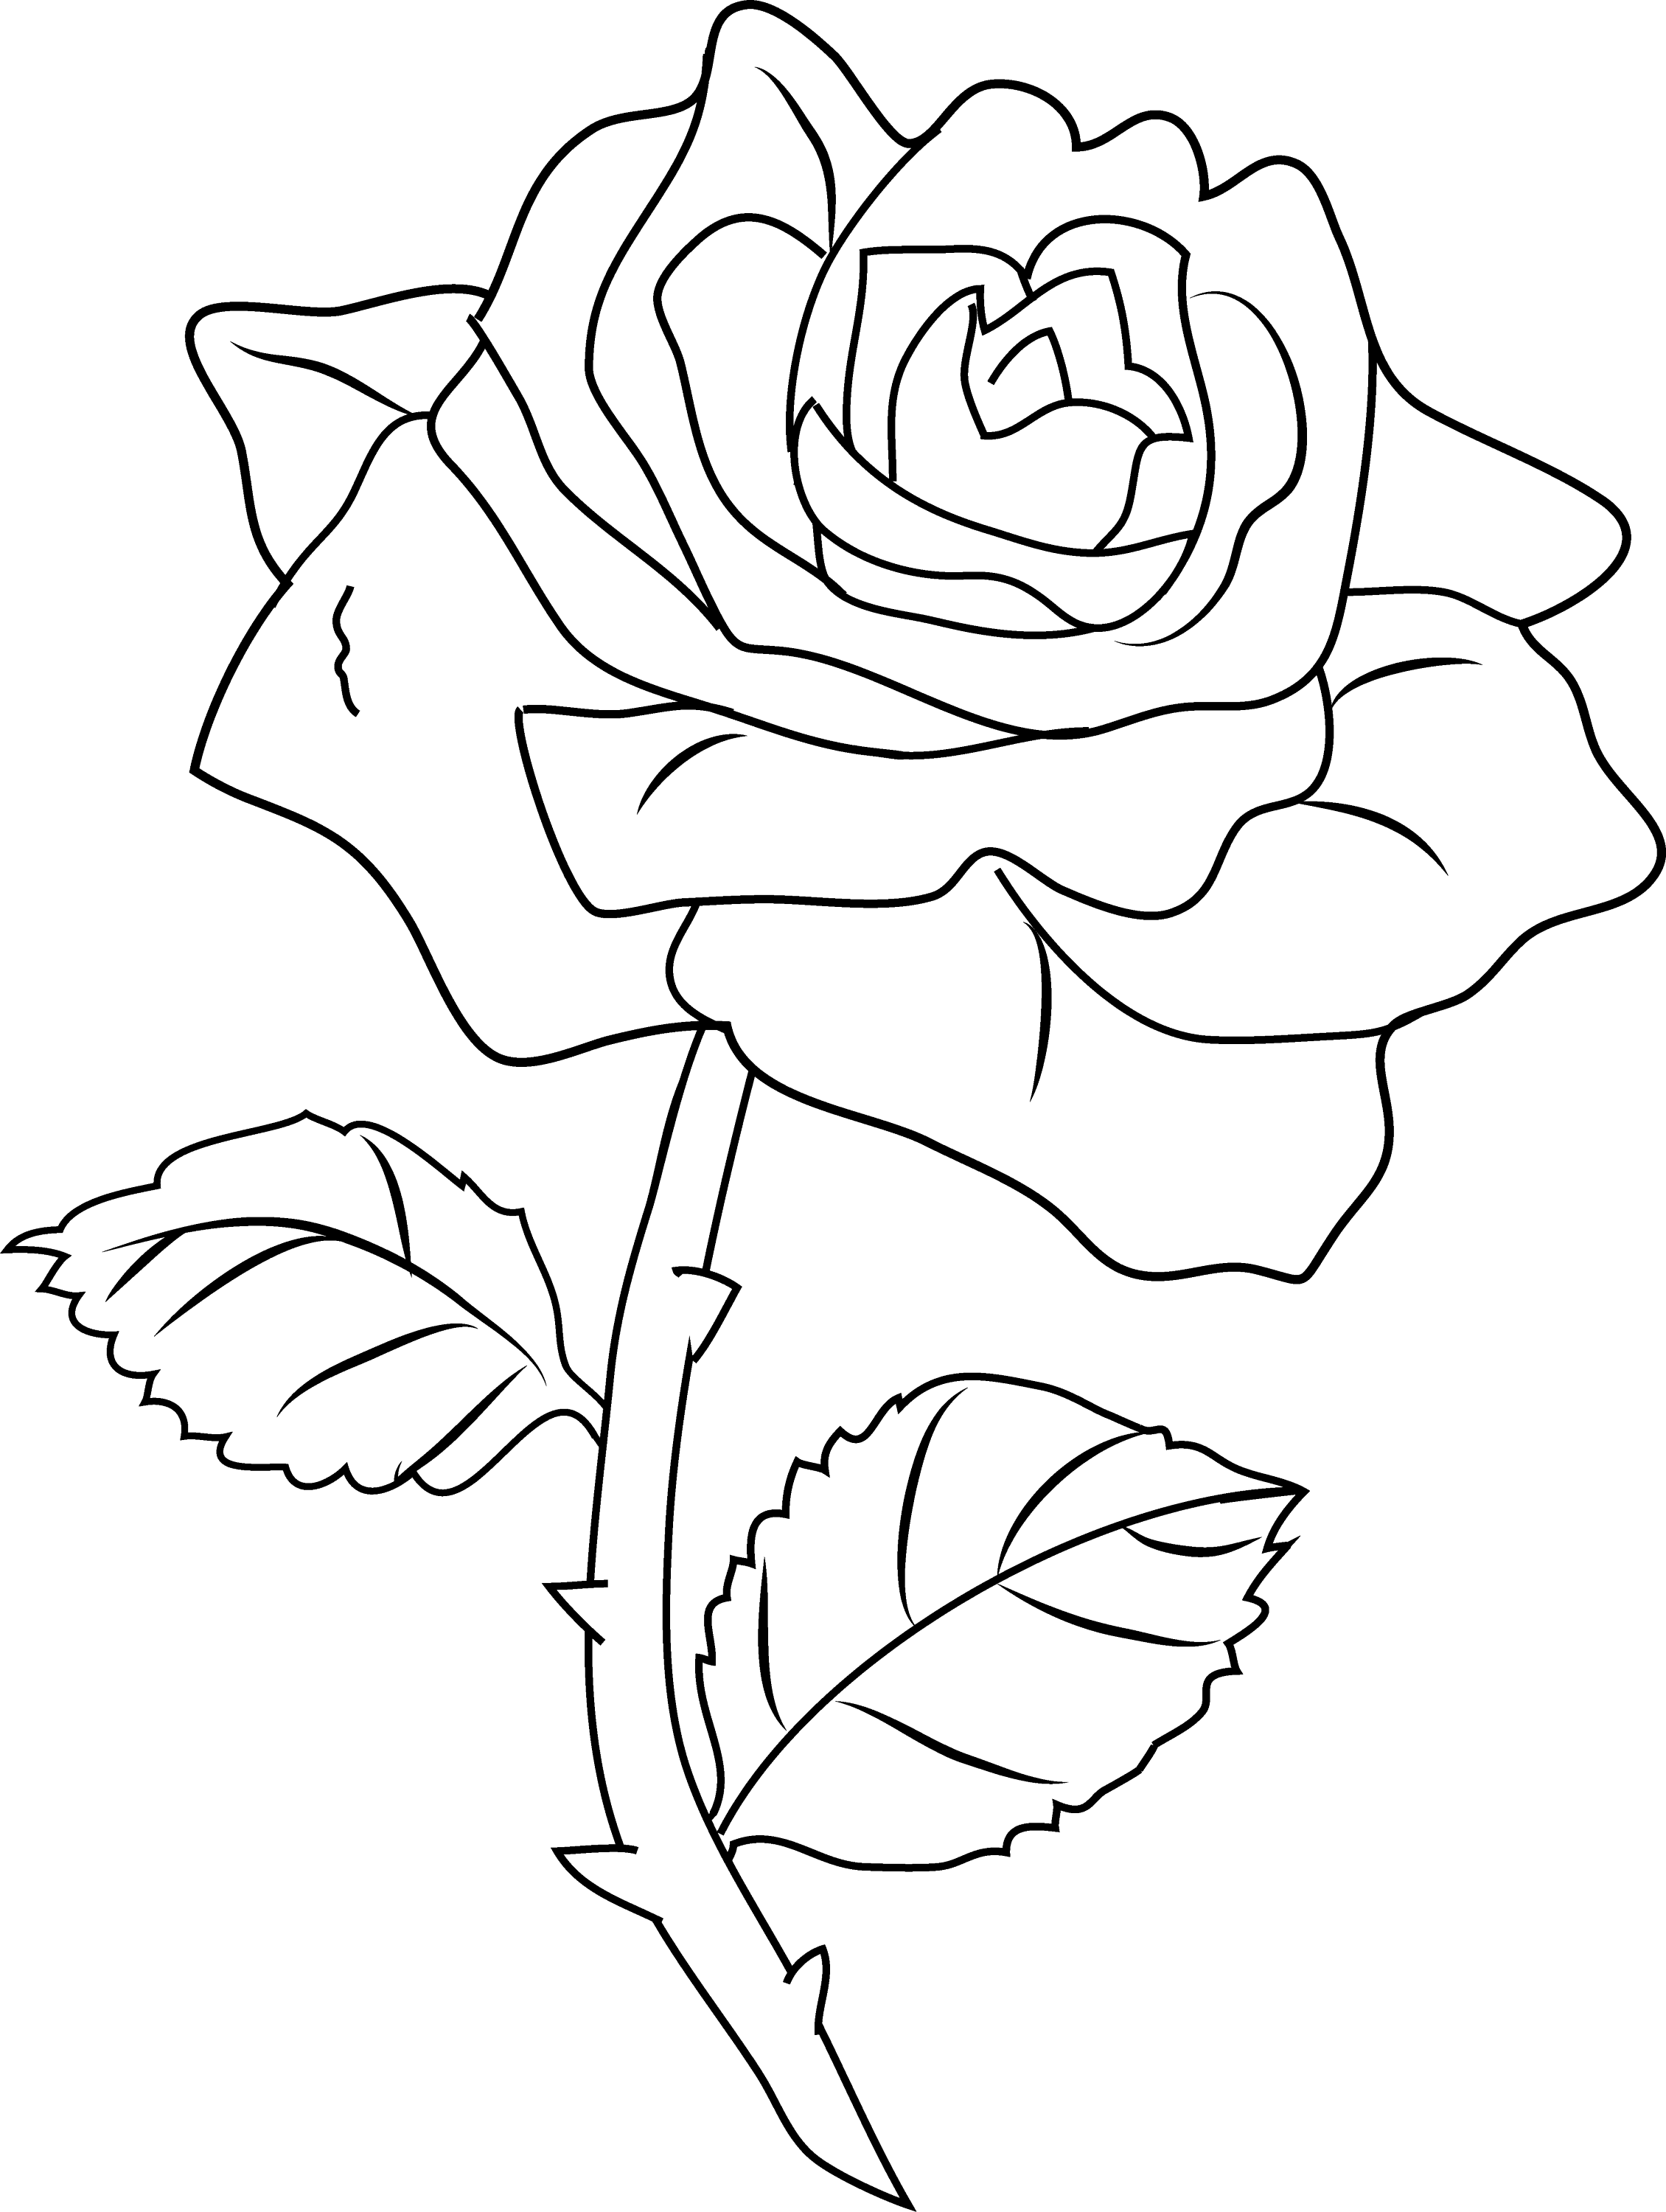 Pretty Rose Coloring Page - Free Clip Art